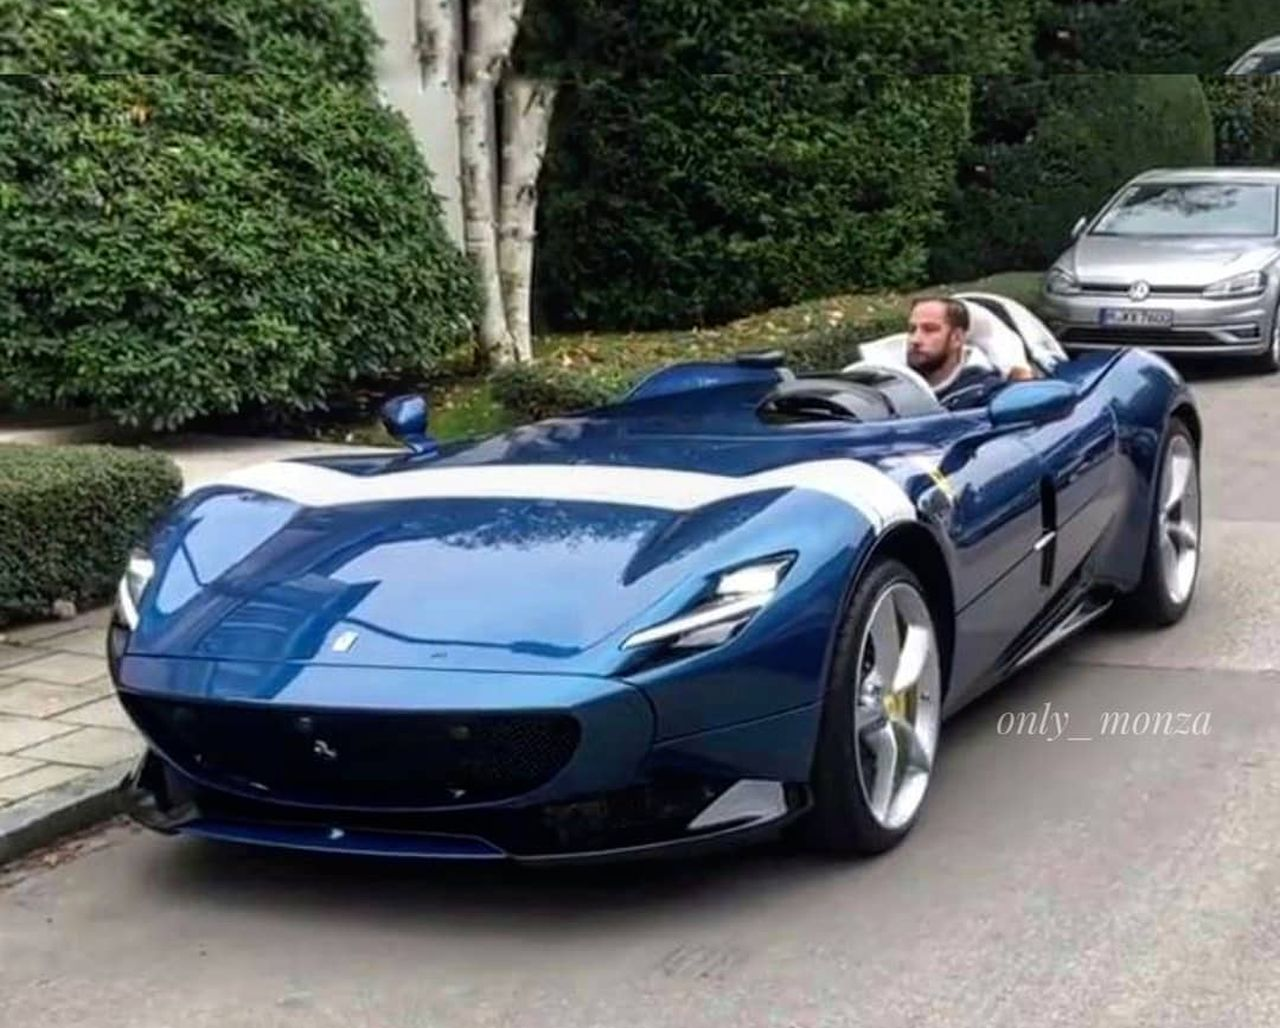 Ferrari Monza Sp1 In Blue Looks Simply Gorgeous The Supercar Blog